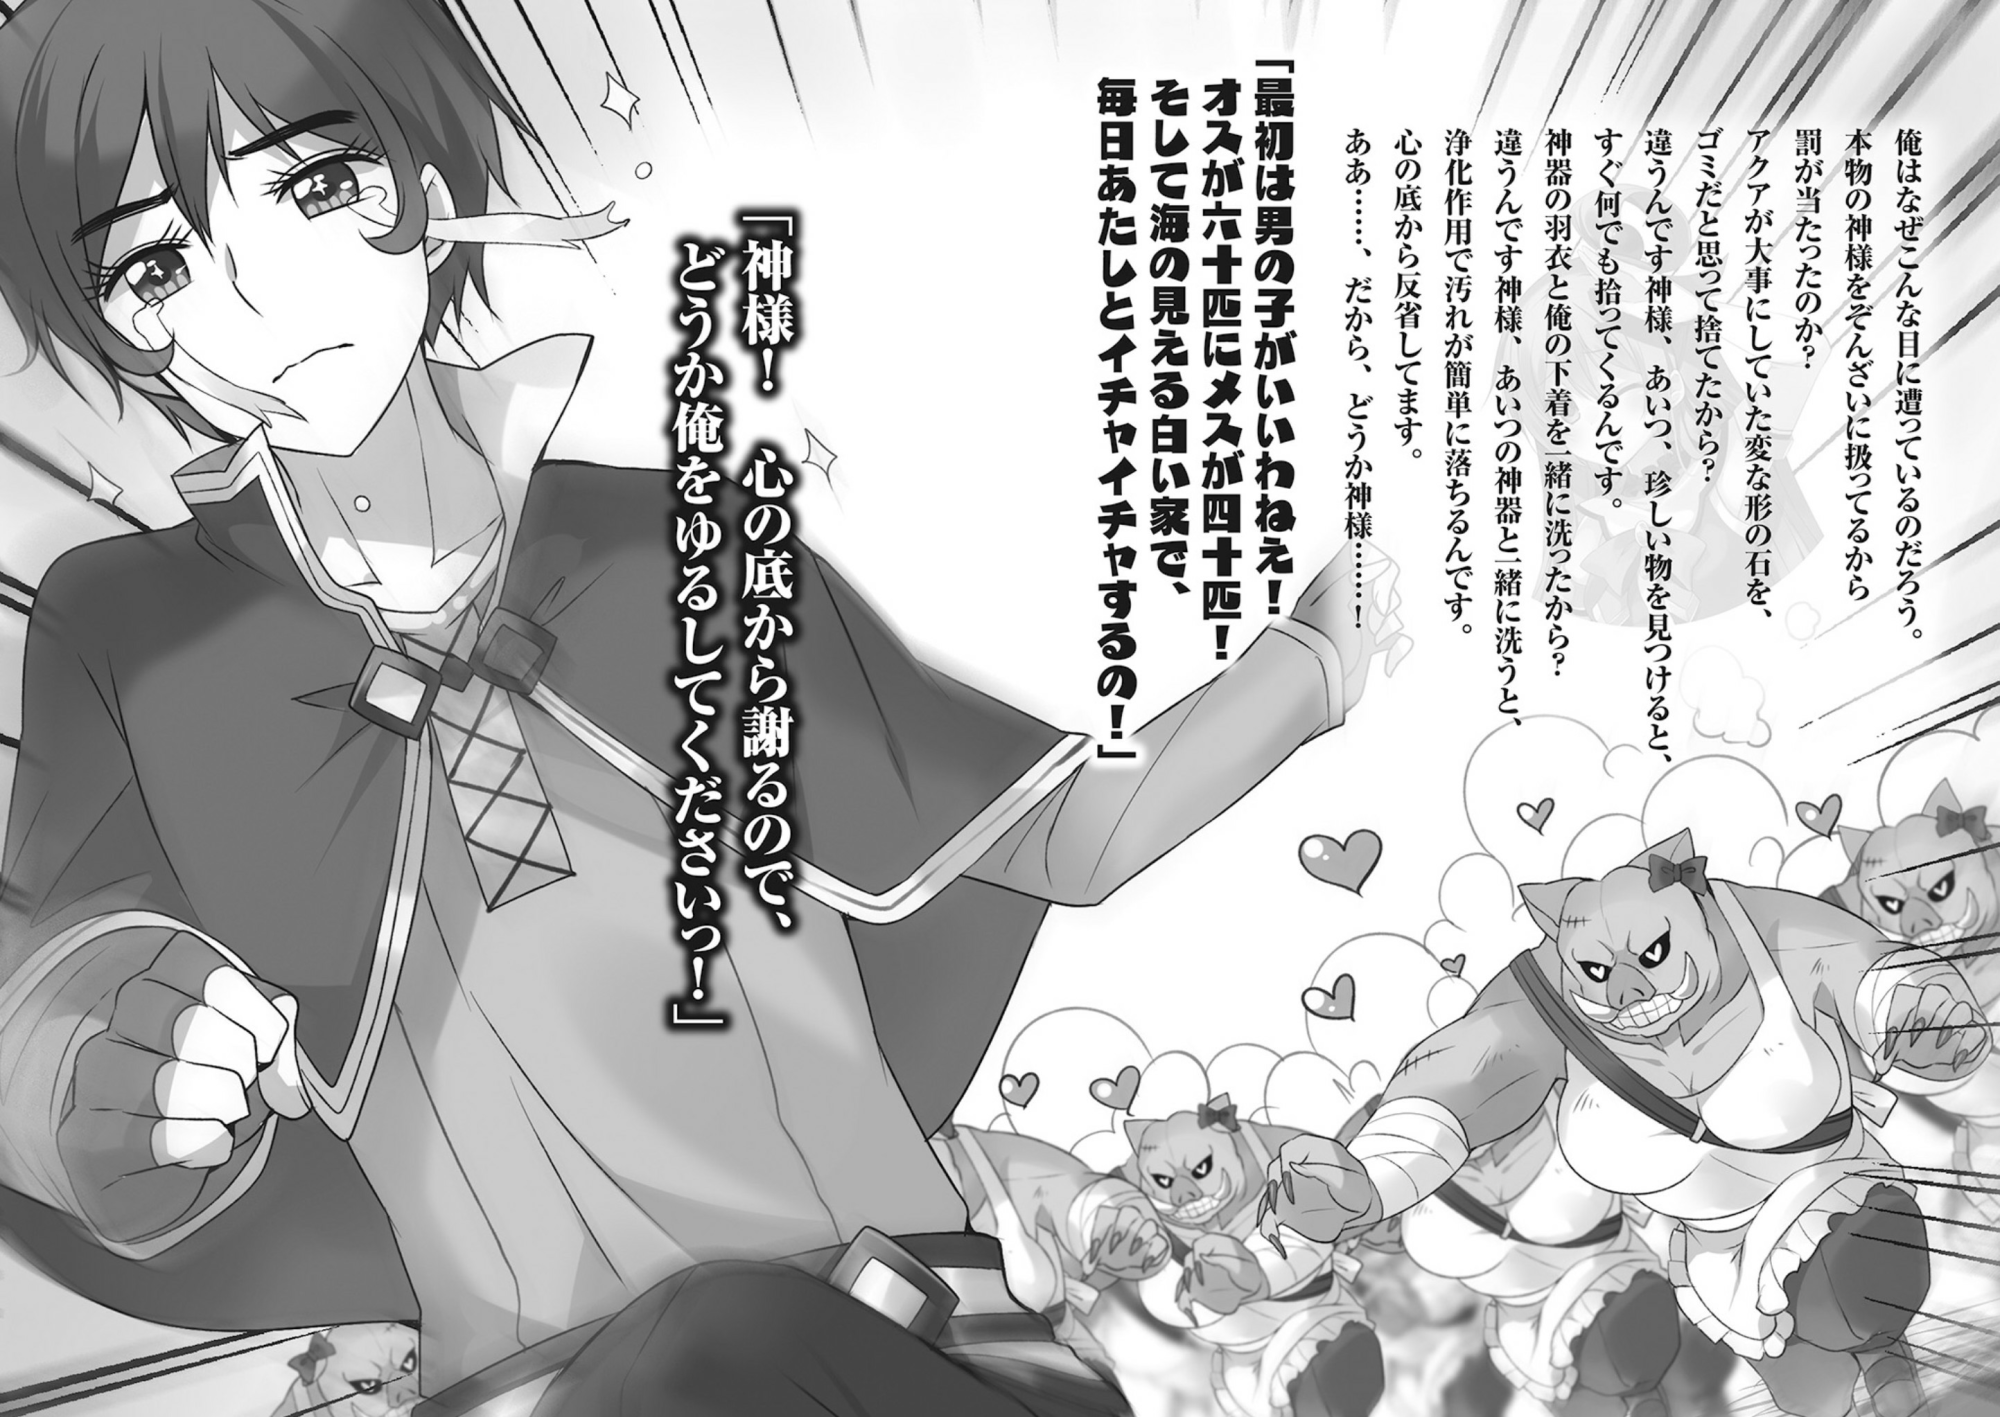 ch2 insert 2.png